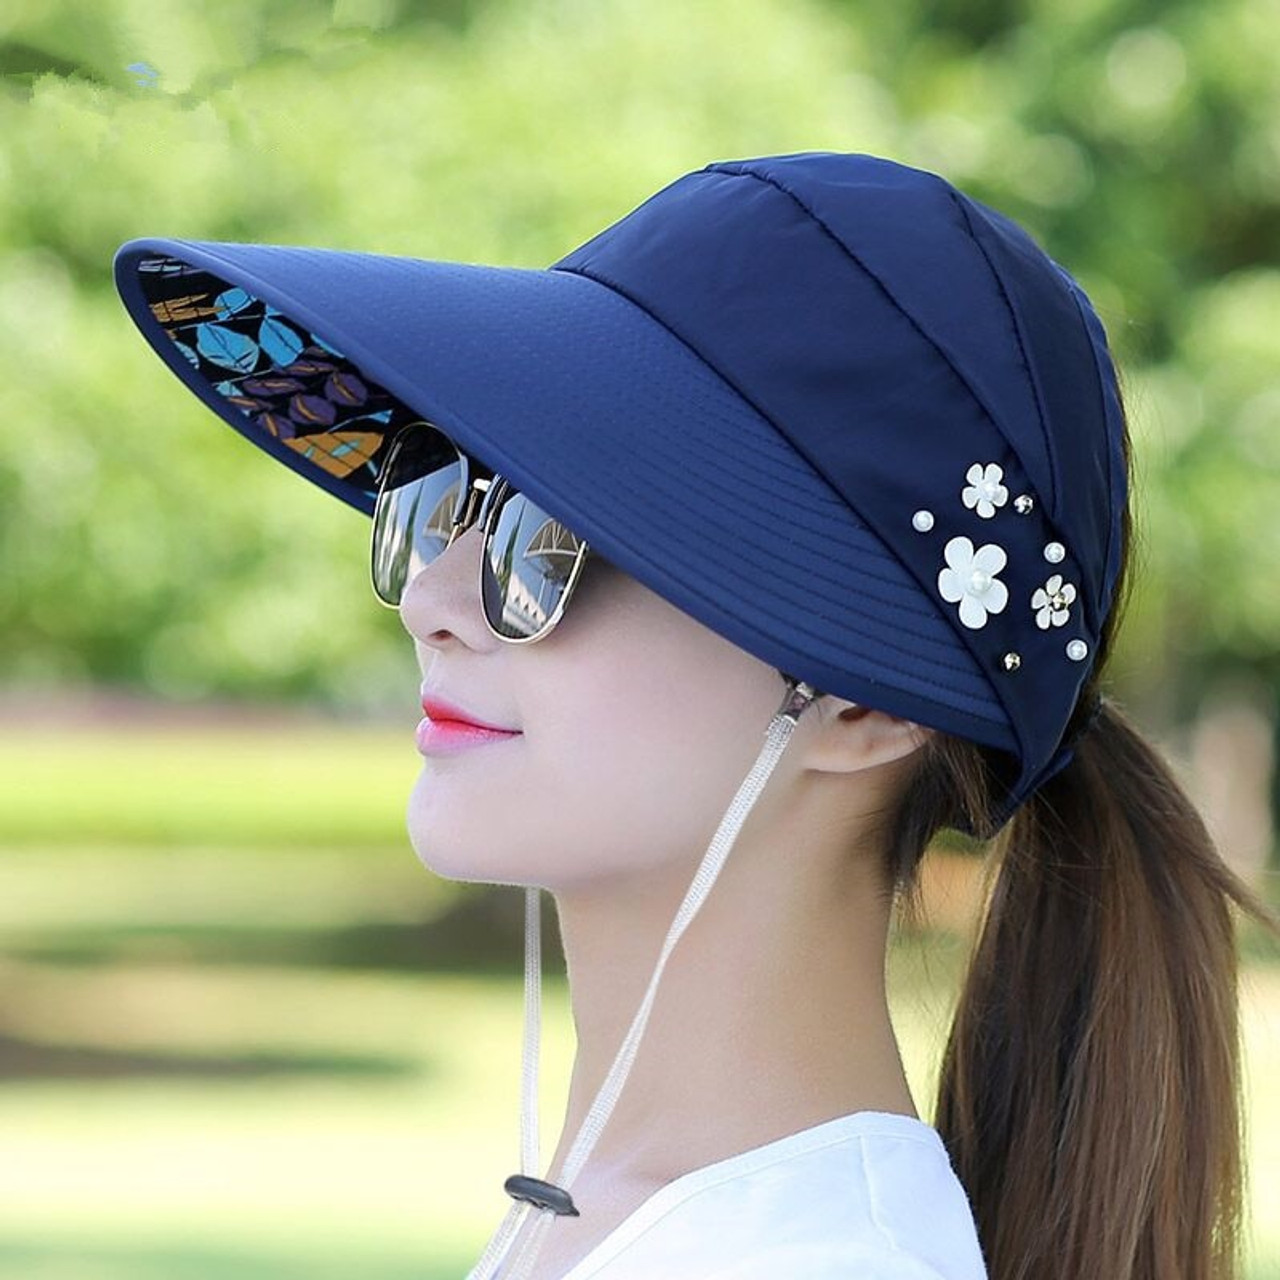 6bcac2f05 2018 Hot 1PCS women summer Sun Hats pearl packable sun visor hat with big  heads wide brim beach hat UV protection female cap